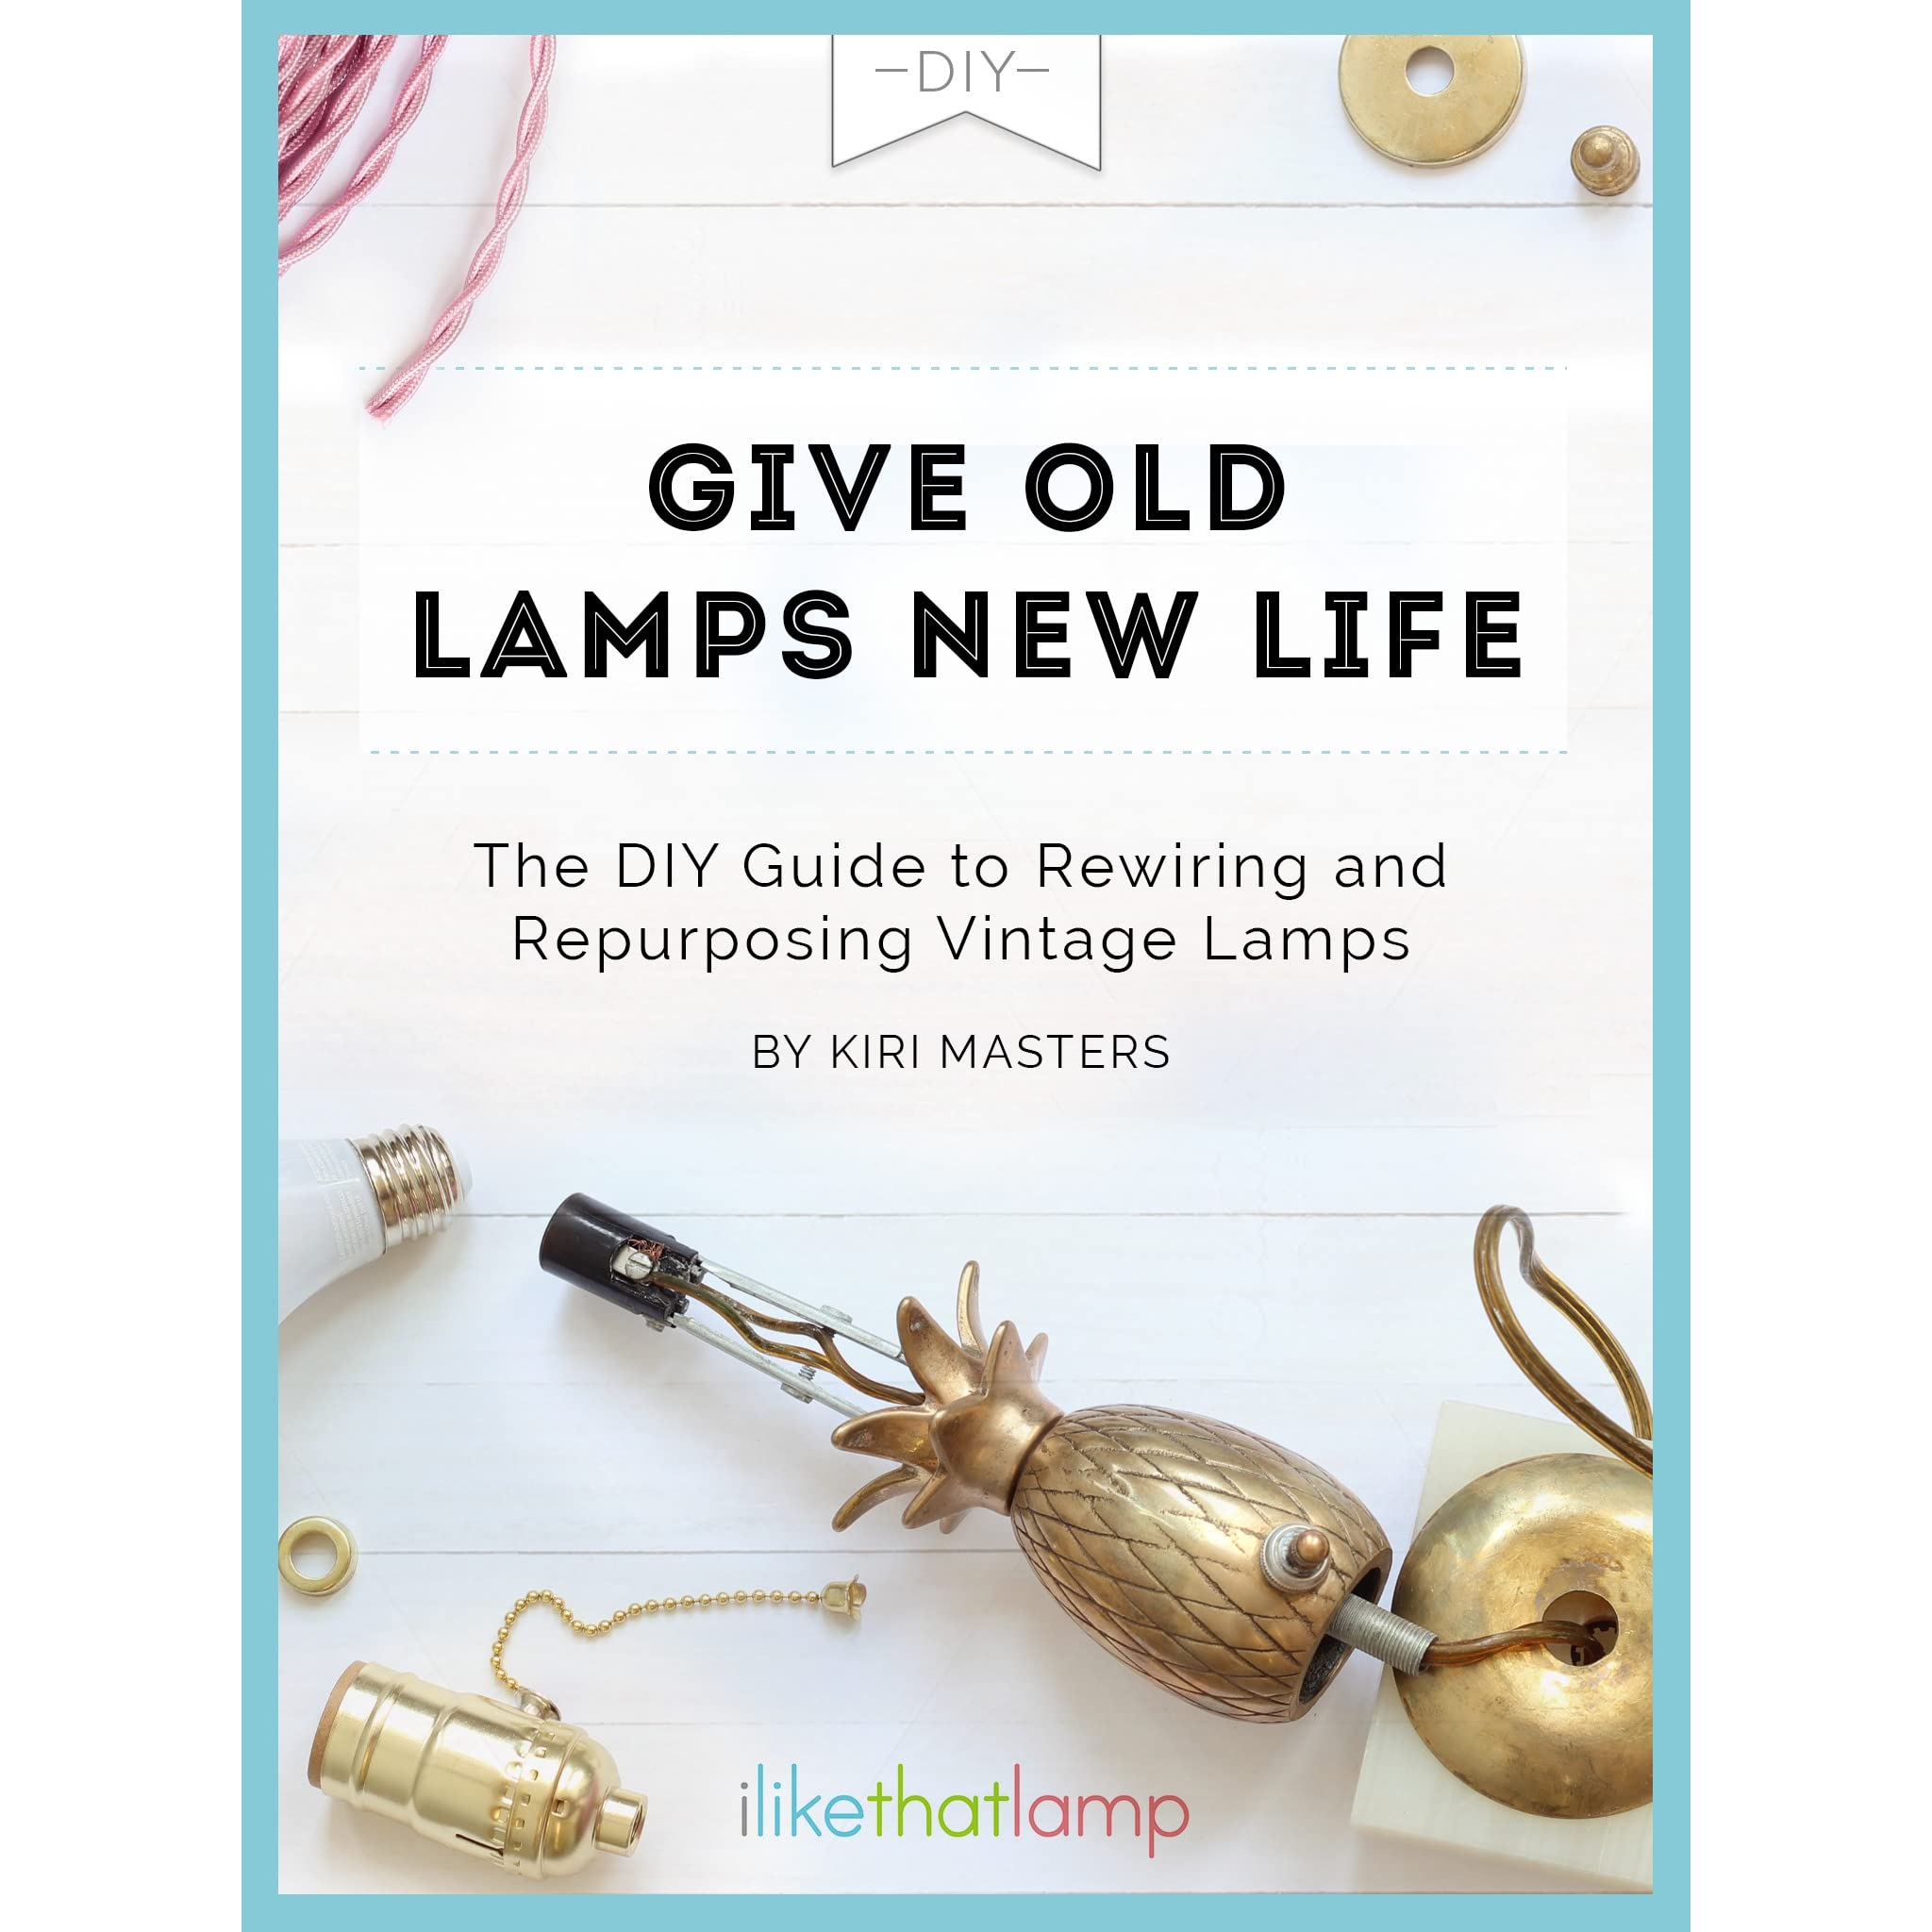 old lamps new life the diy guide to rewiring and repurposing rh goodreads com Lamp Rewiring Supplies rewiring vintage light fixture